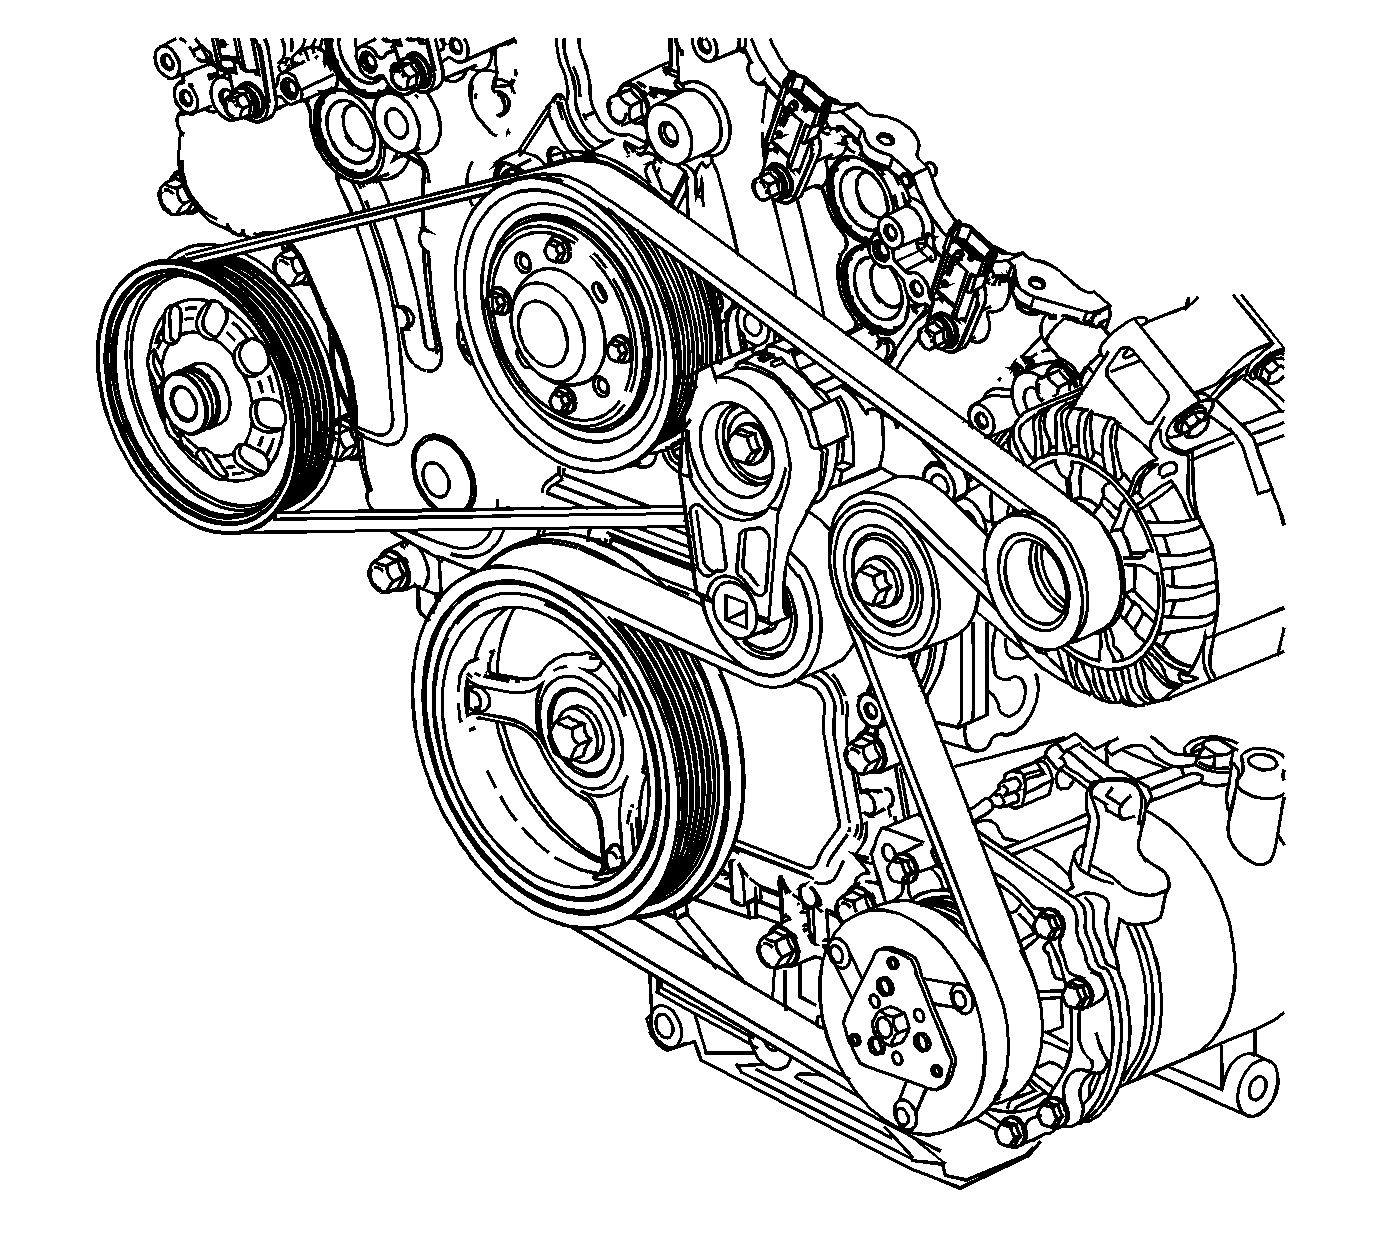 Serpentine Belt To Bypass A C I Would Like To Know If There Is A